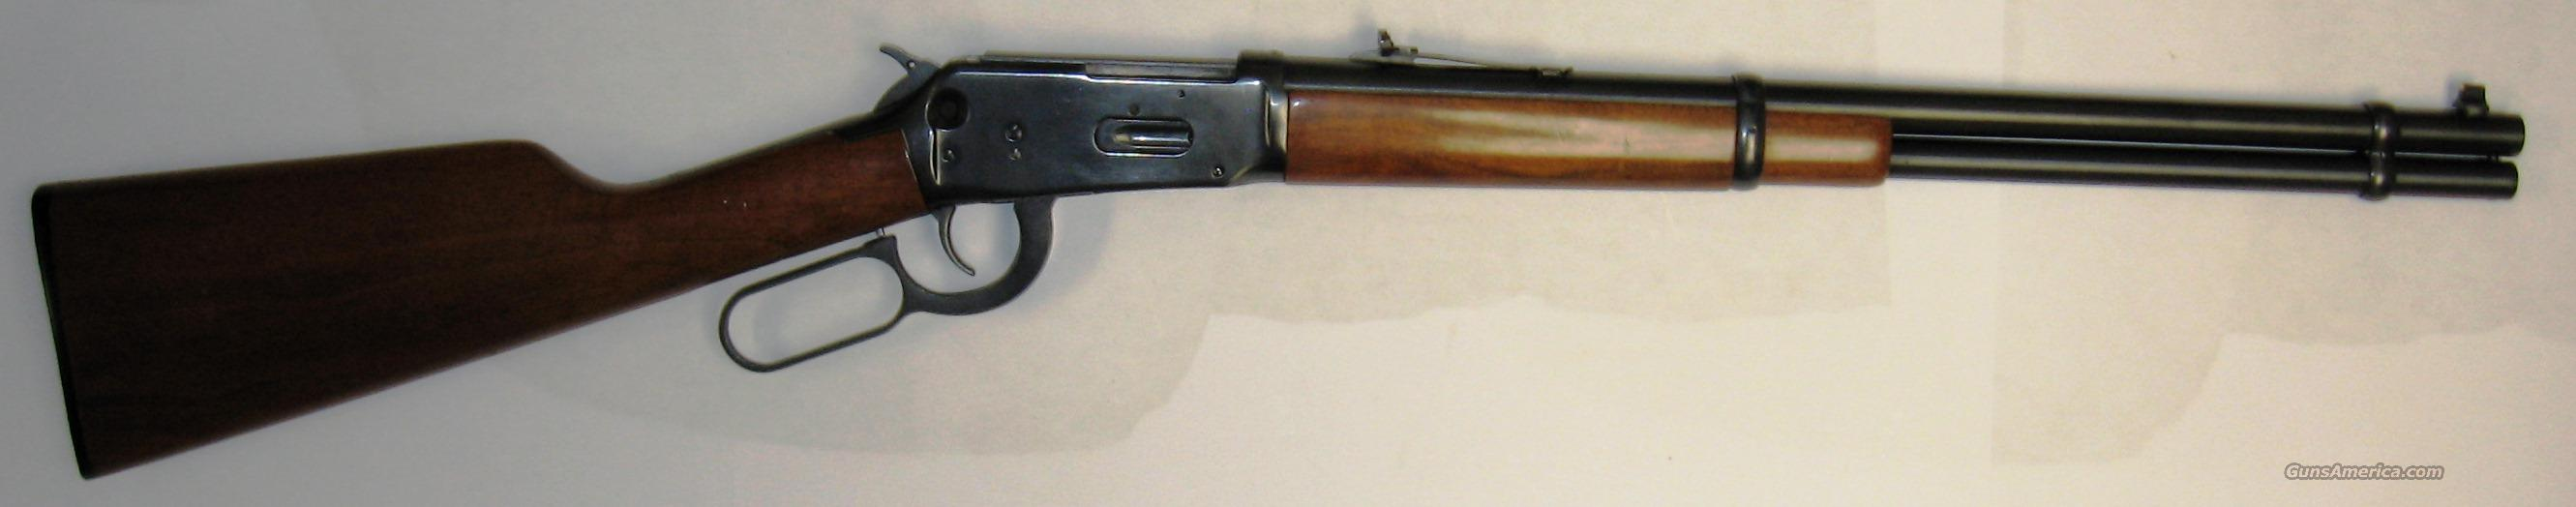 "Winchester 94AE 20"" USED   Guns > Rifles > Winchester Rifles - Modern Lever > Model 94 > Post-64"